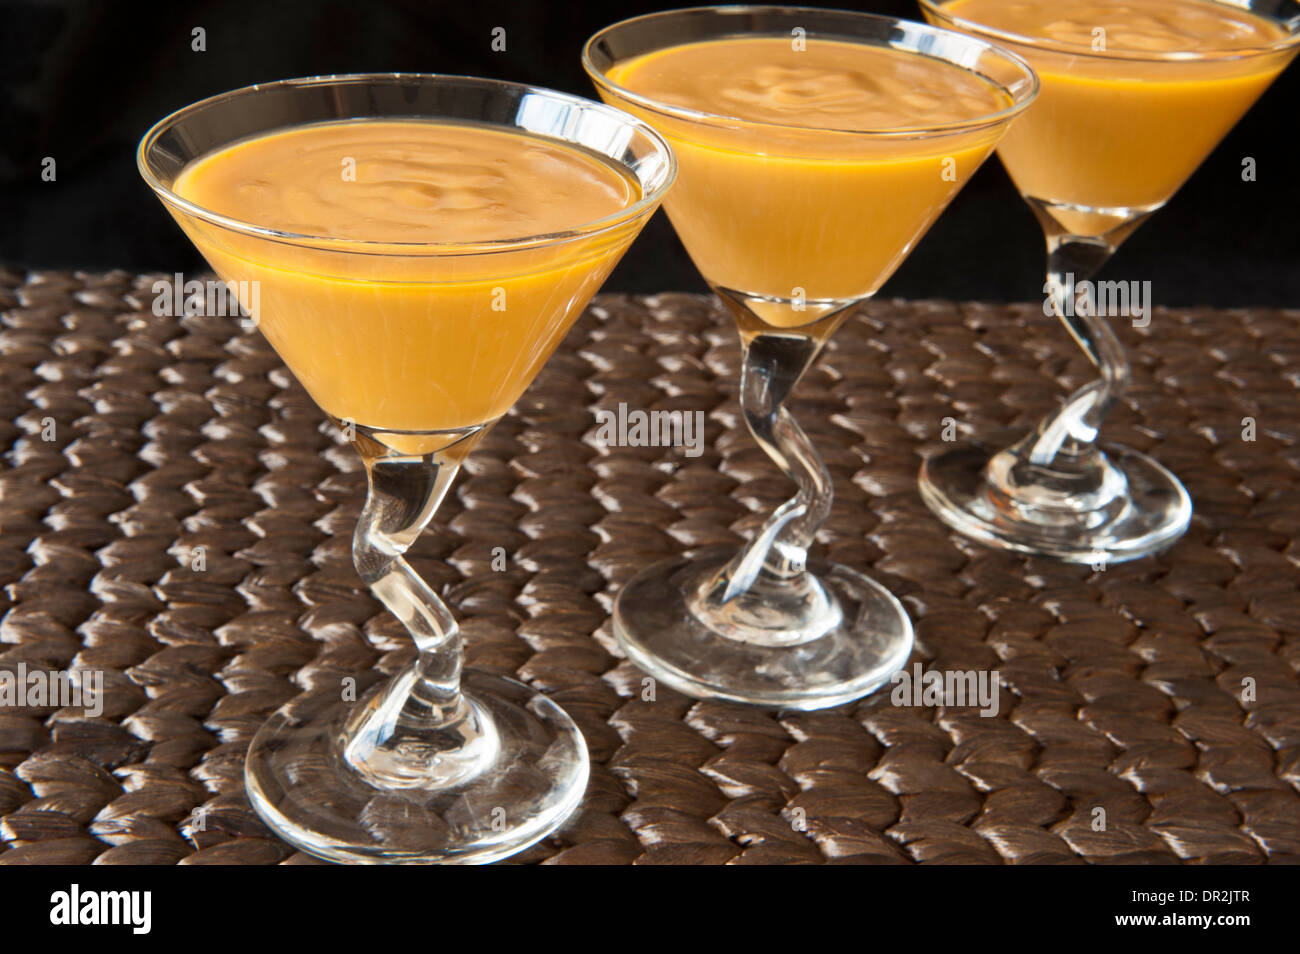 Butterscotch pudding in a martini glass on a woven mat Stock Photo